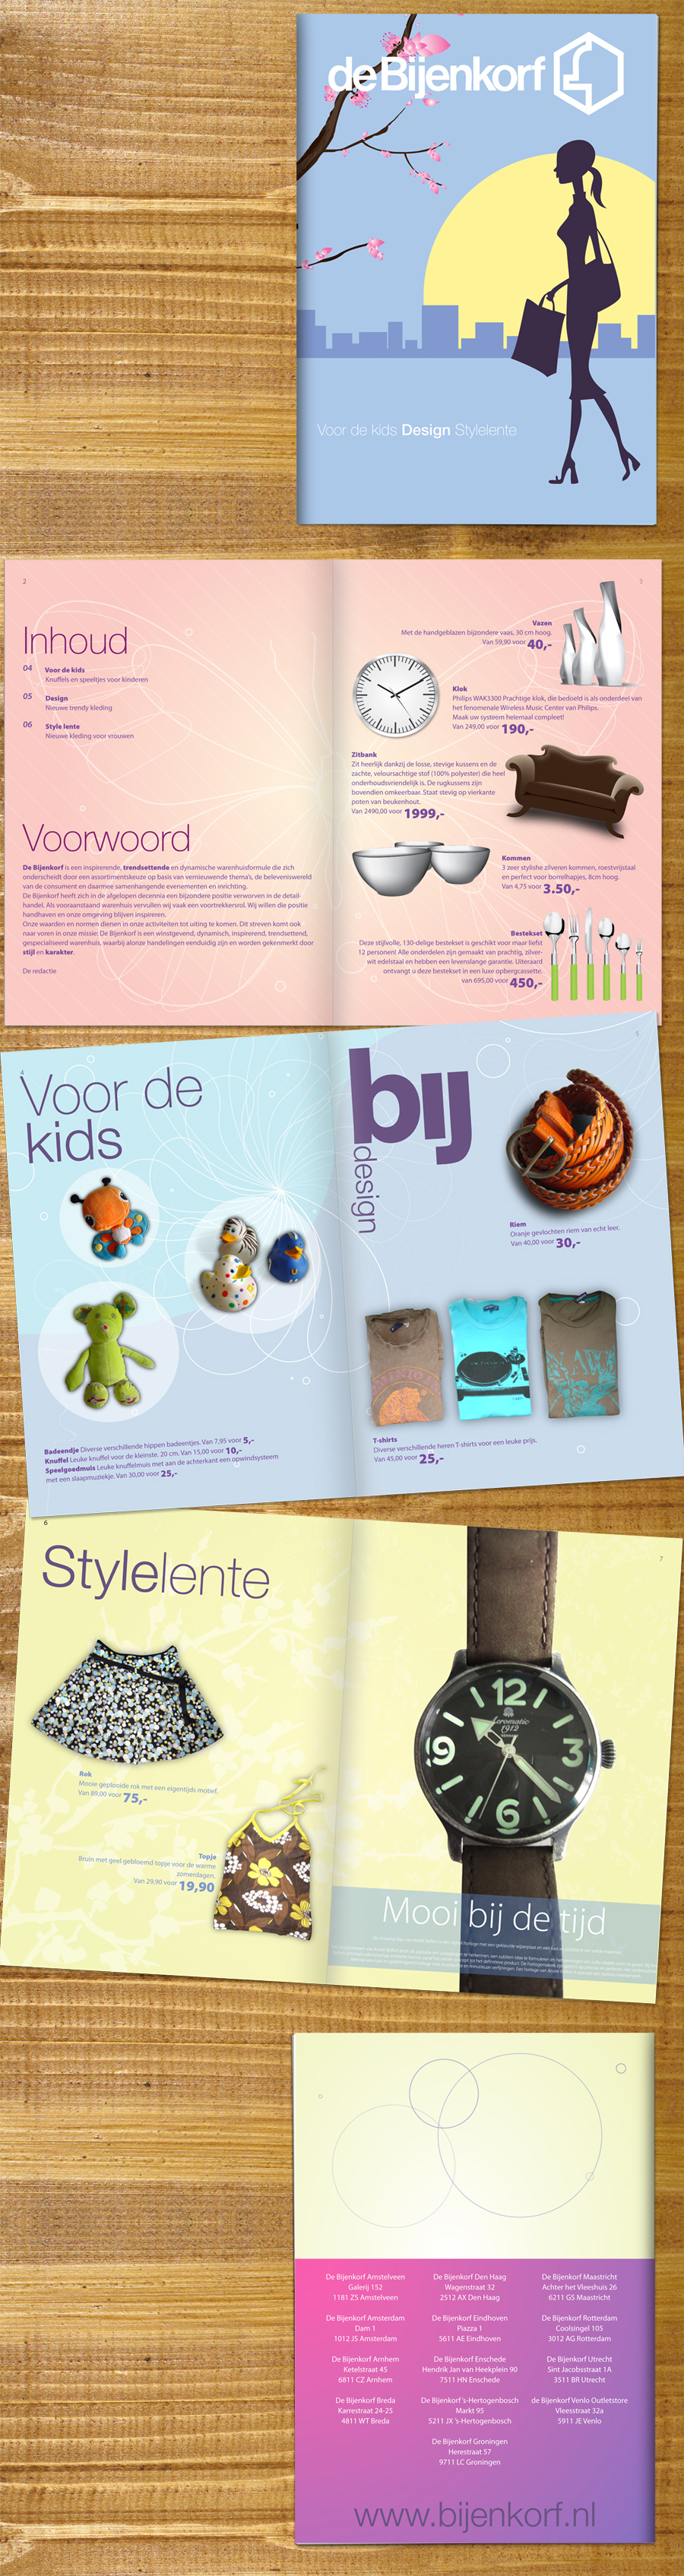 De Bijenkorf brochure school by JaxeNL